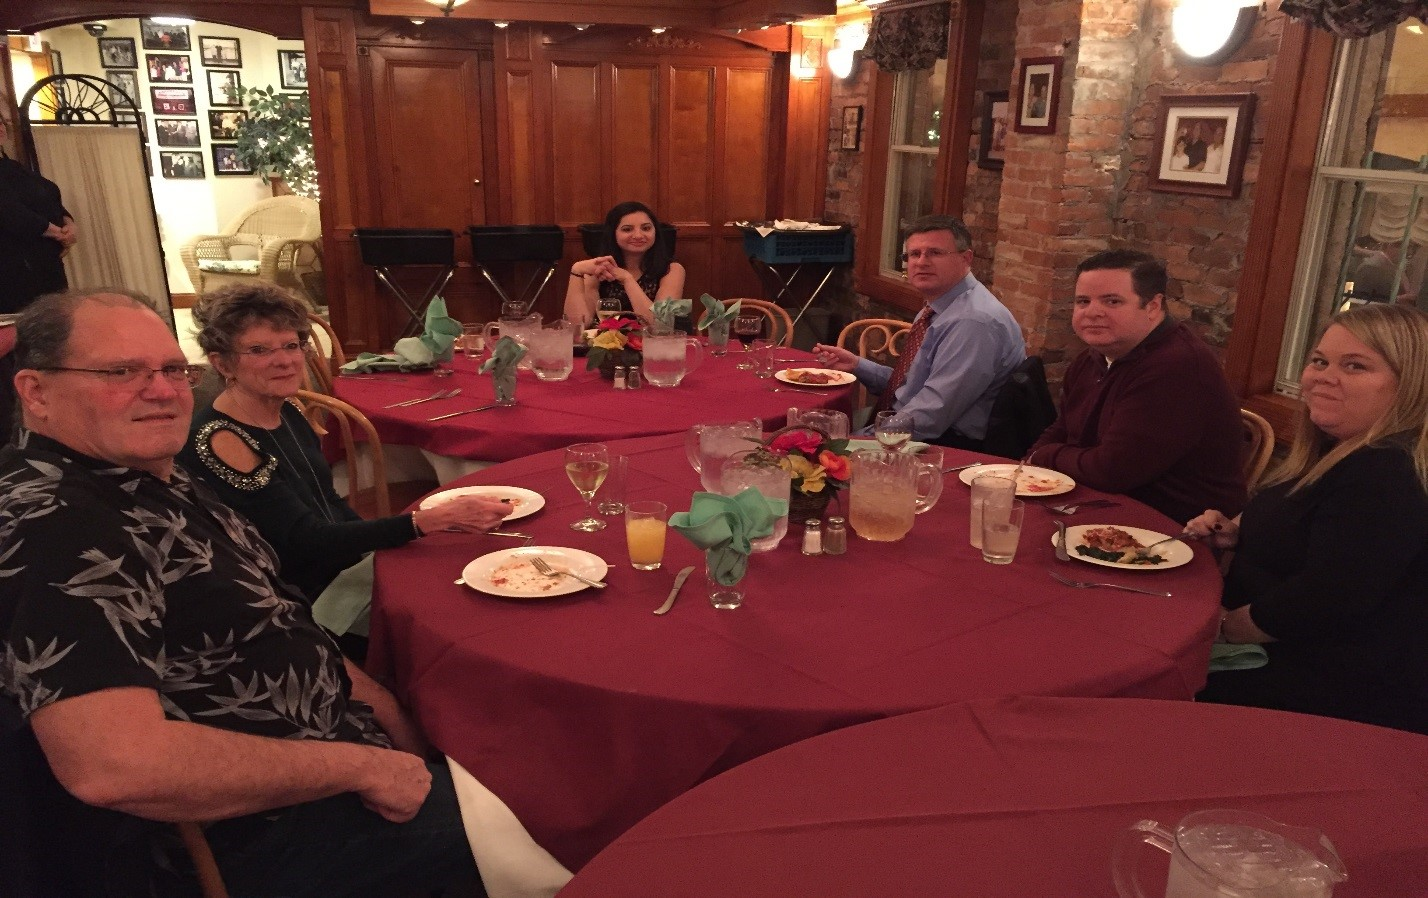 Atlantic City ActioNeters enjoyed a great holiday dinner